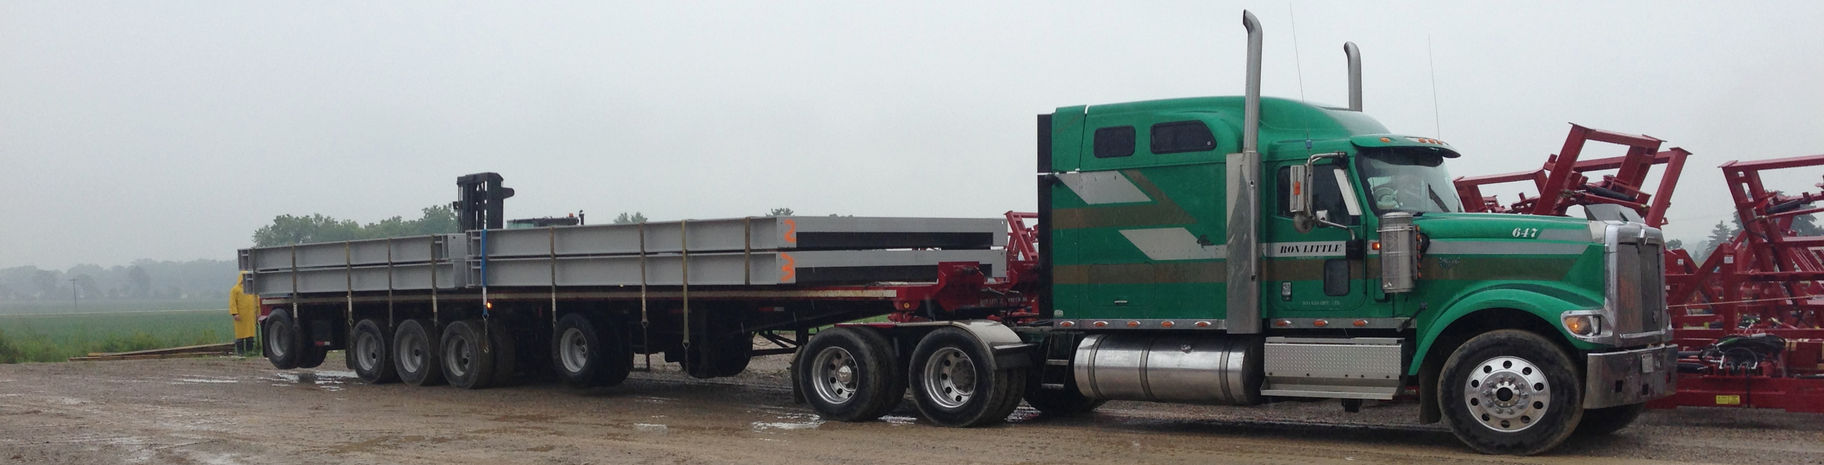 Salford, Ontario, weigh scale / truck scale delivery.